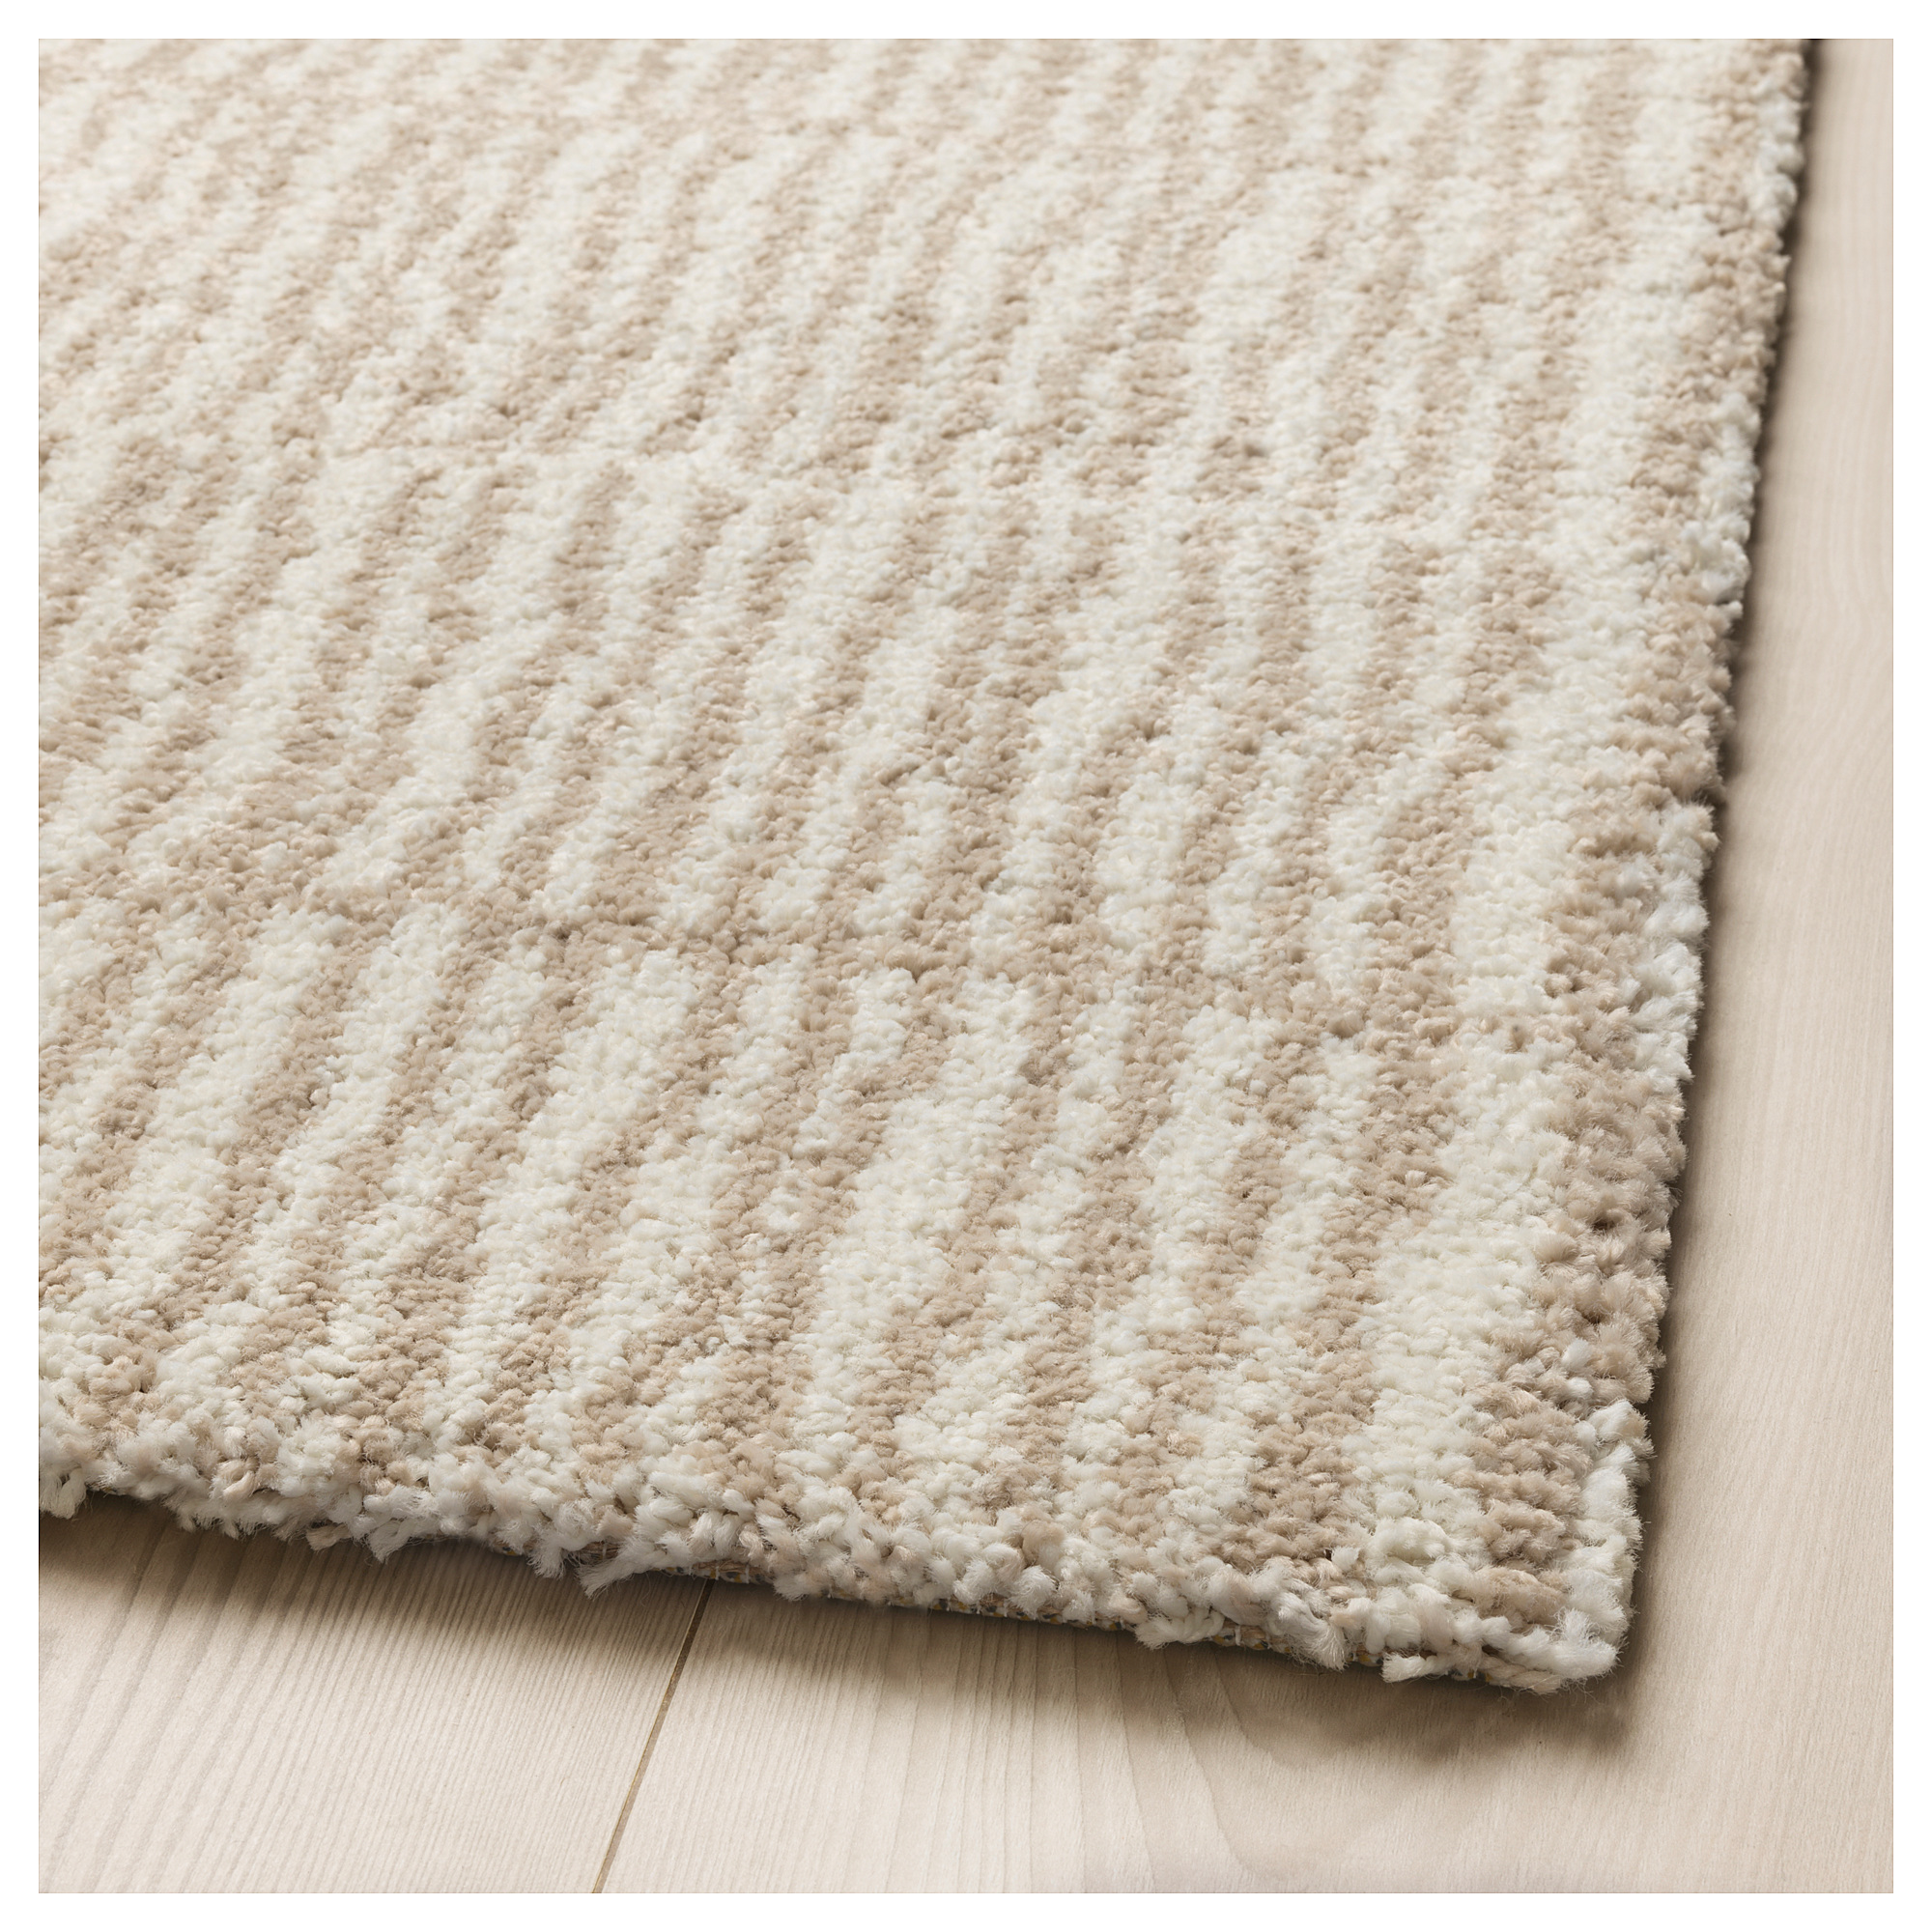 Lindelse Rug High Pile Natural Beige 5 7 X7 10 170x240